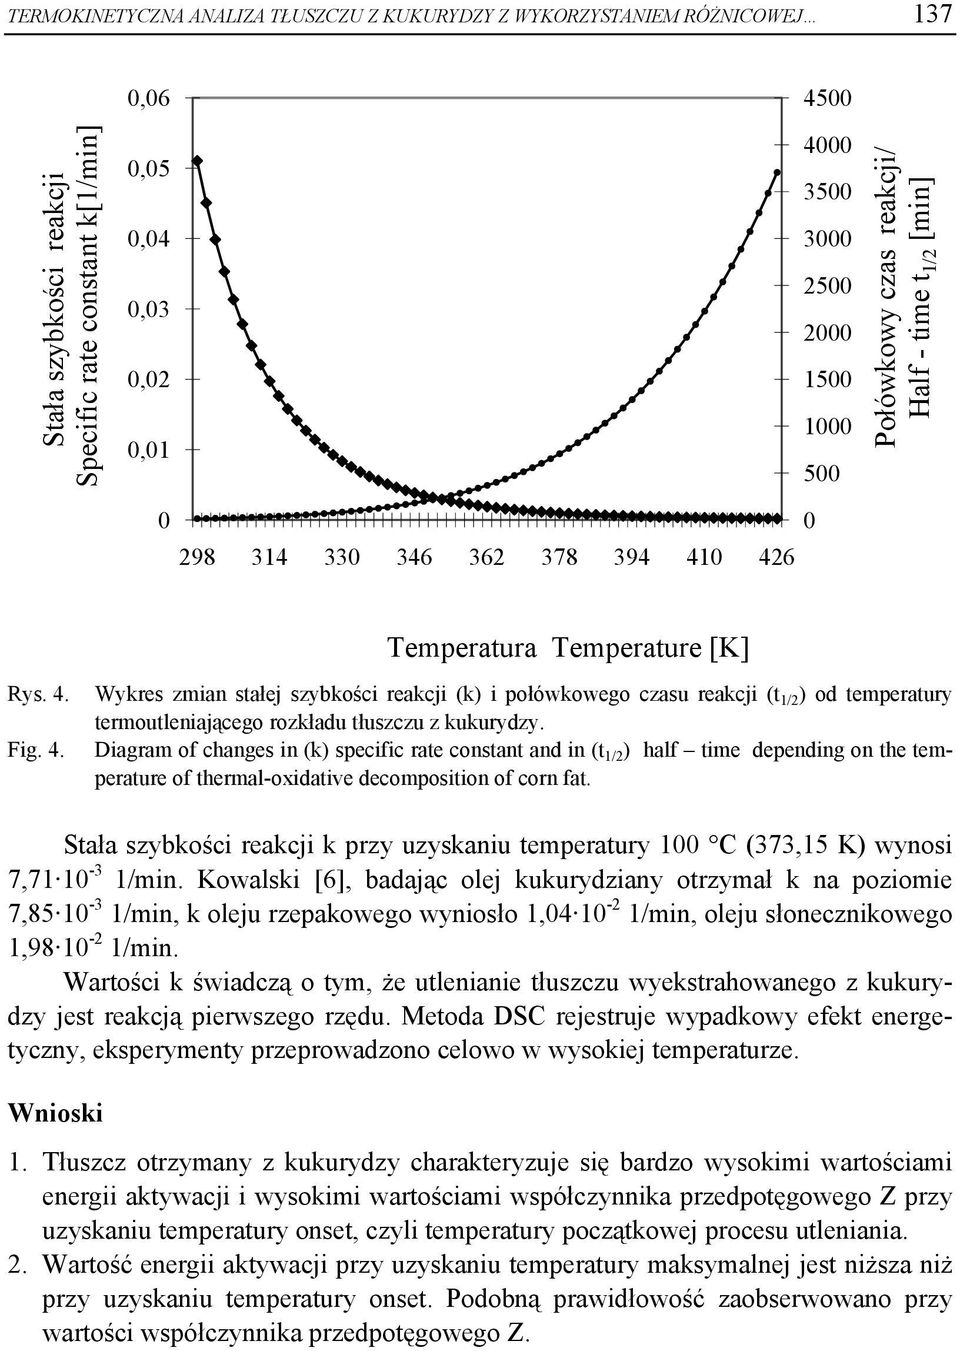 Fig. 4. Diagram of changes in (k) specific rate constant and in (t 1/2 ) half time depending on the temperature of thermal-oxidative decomposition of corn fat.